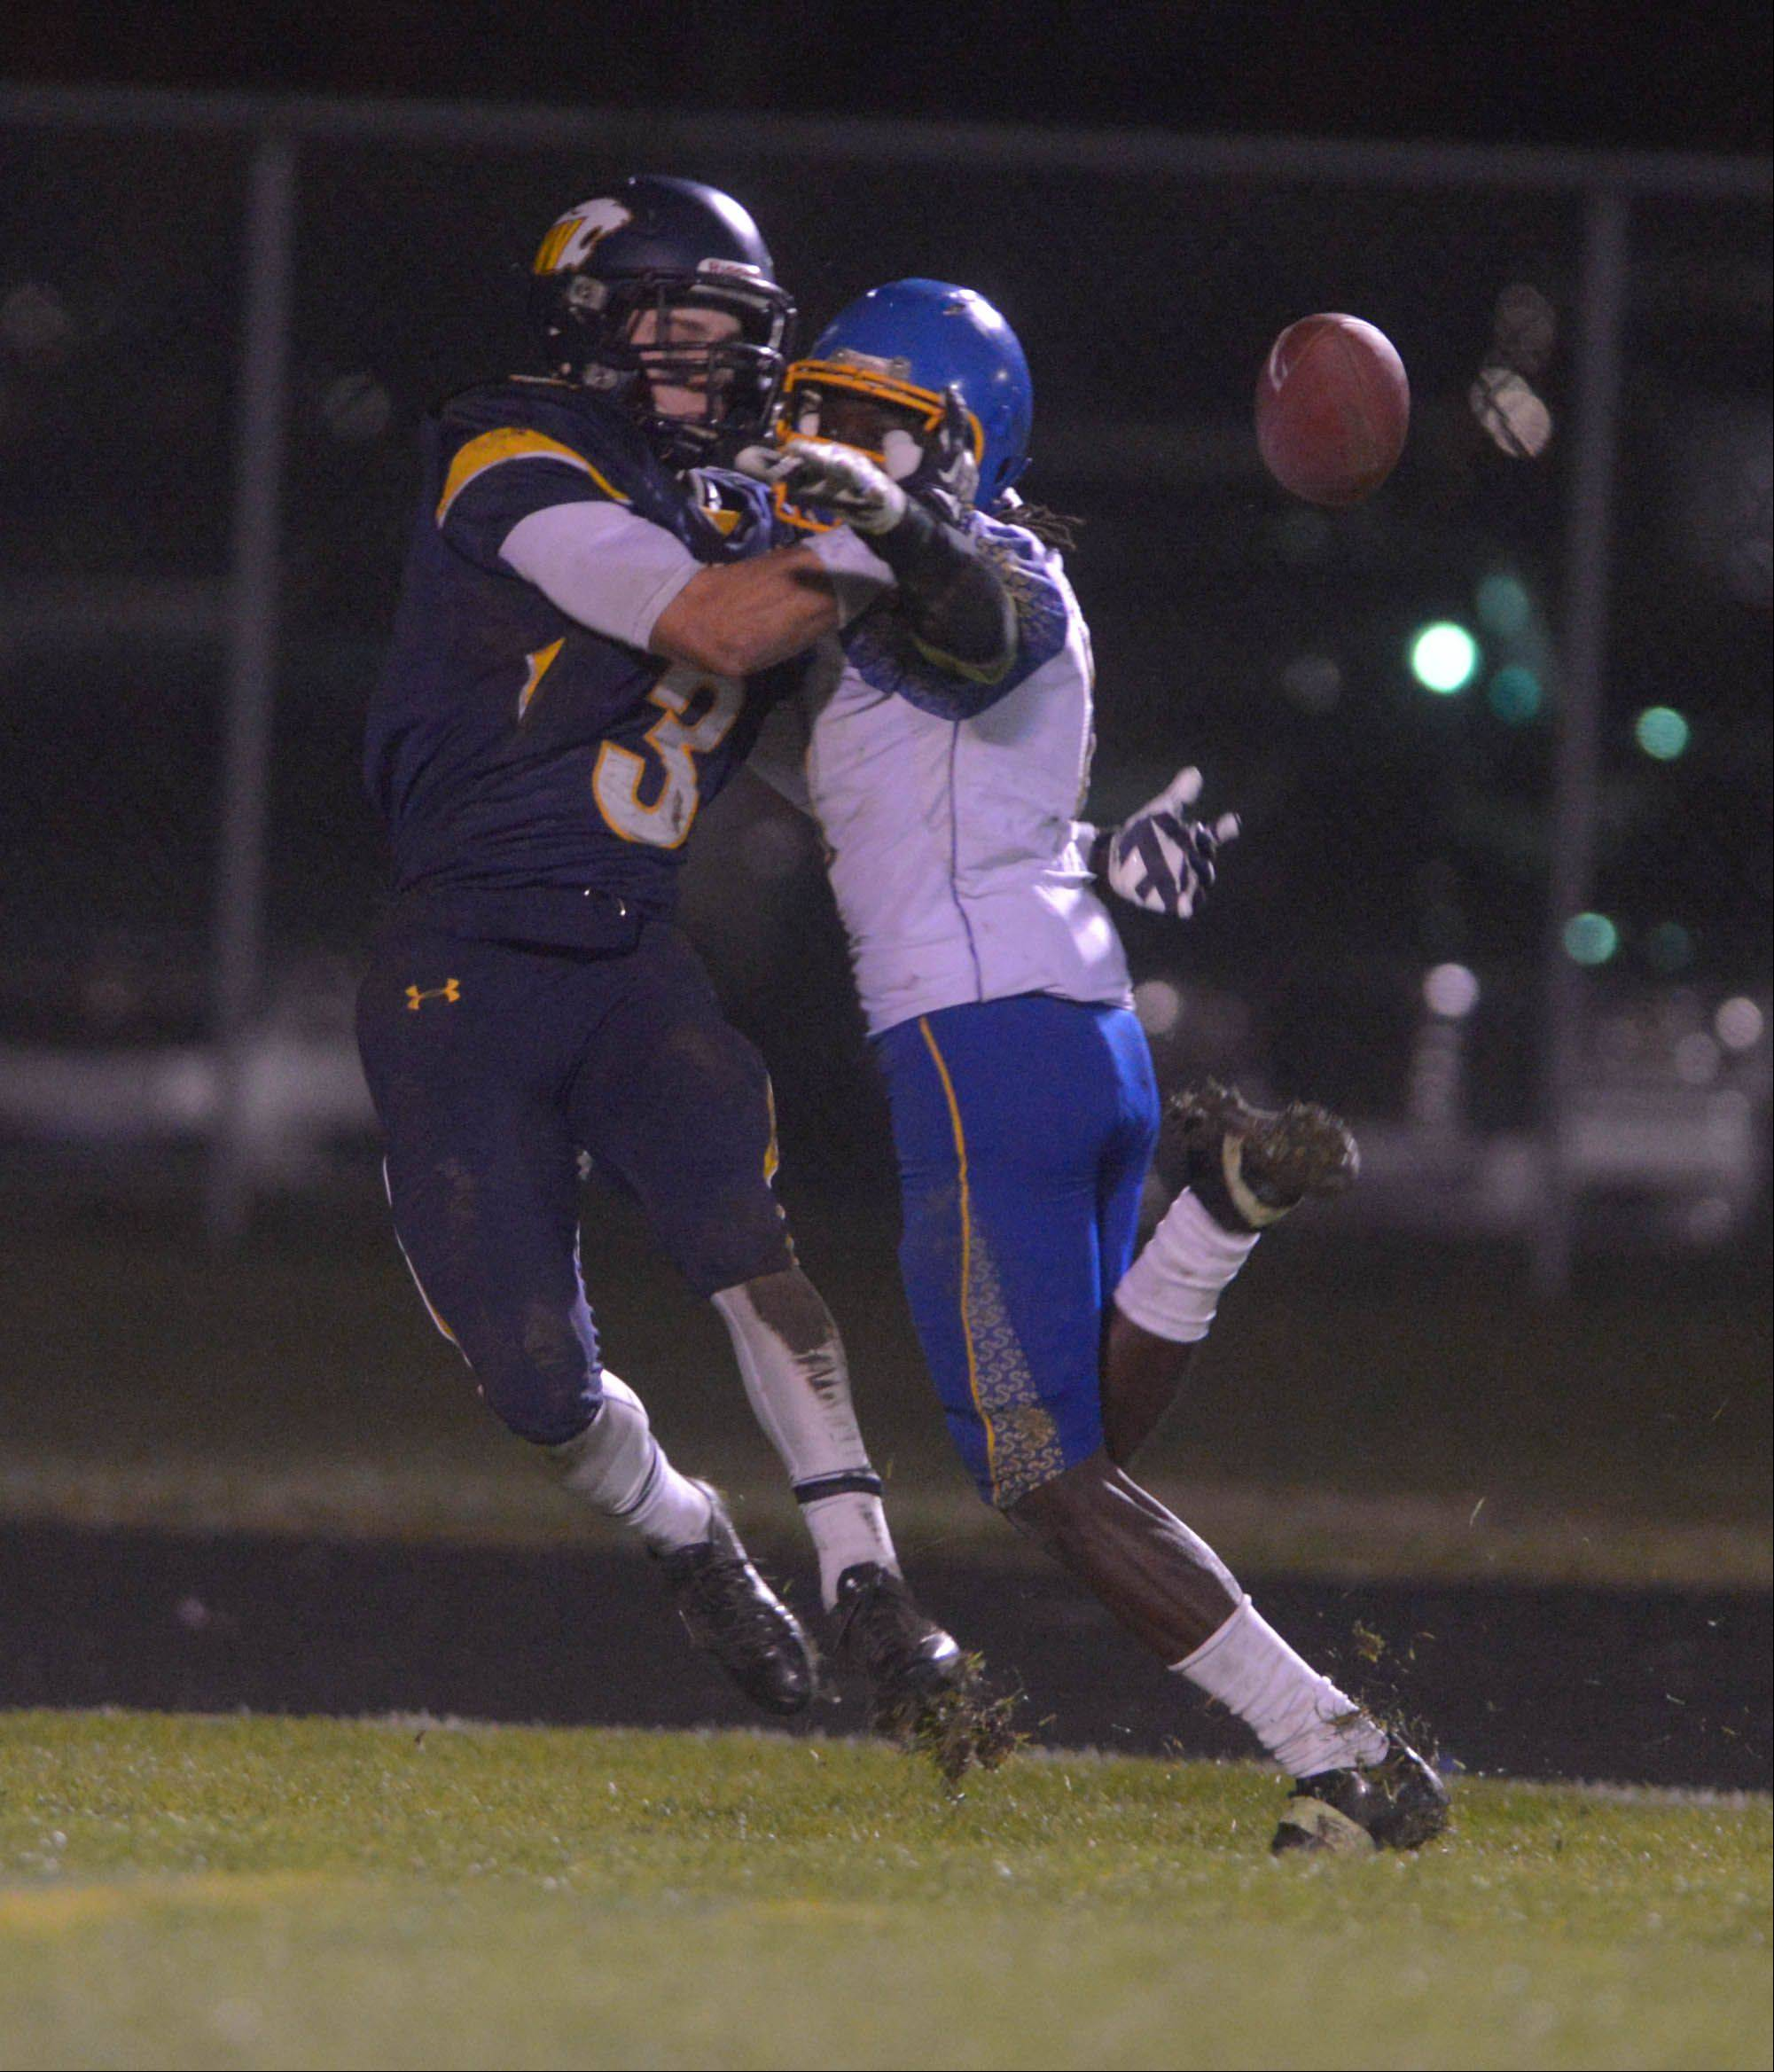 Neuqua Valley's Mikey Dudek tries to make a catch under pressure during Saturday's playoff game in Naperville.